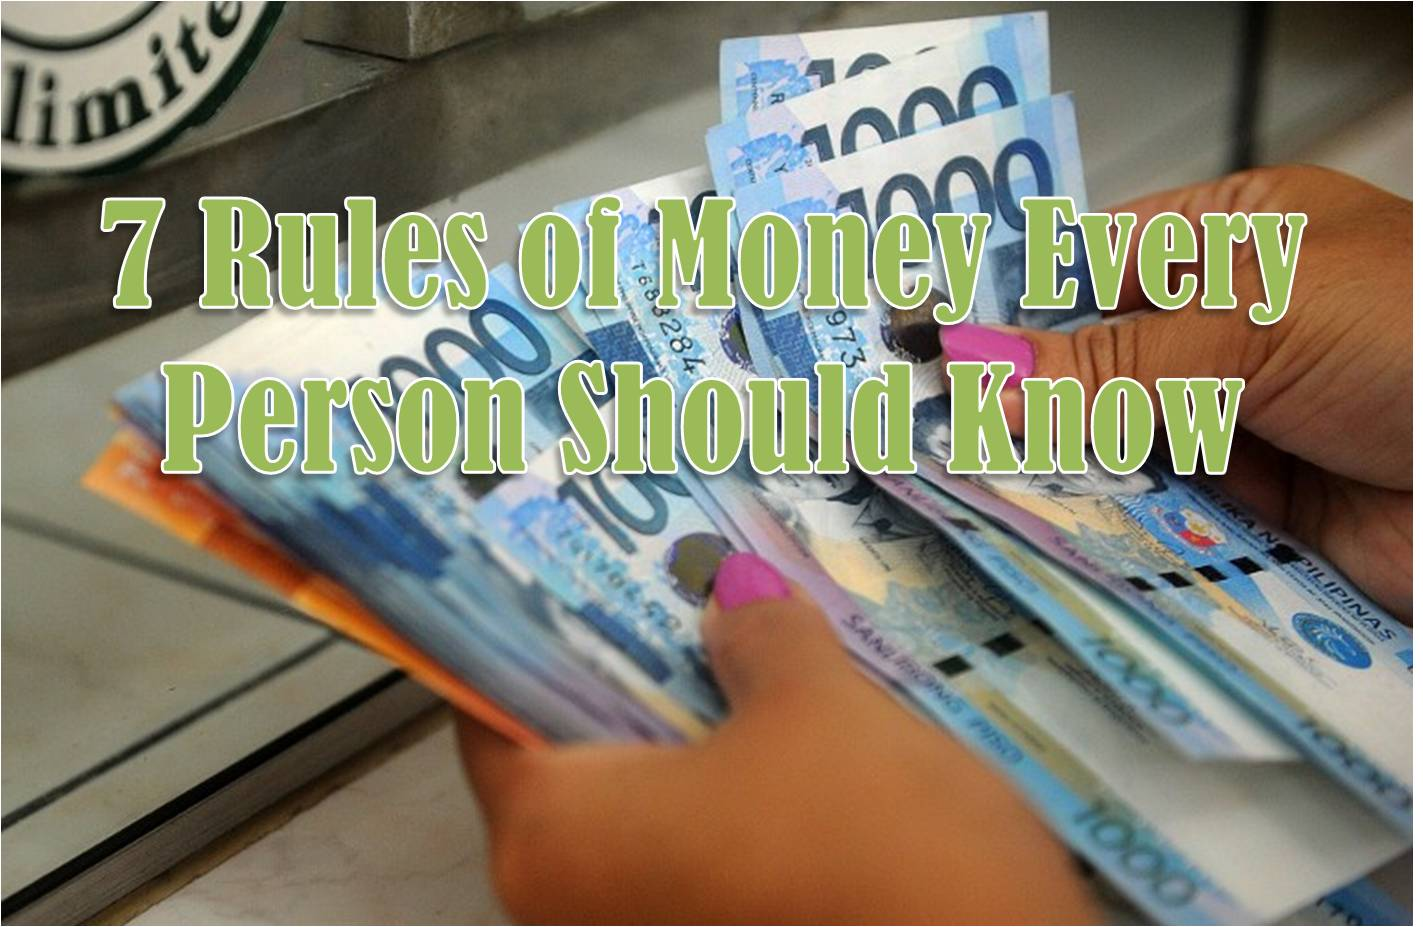 7 rules of money